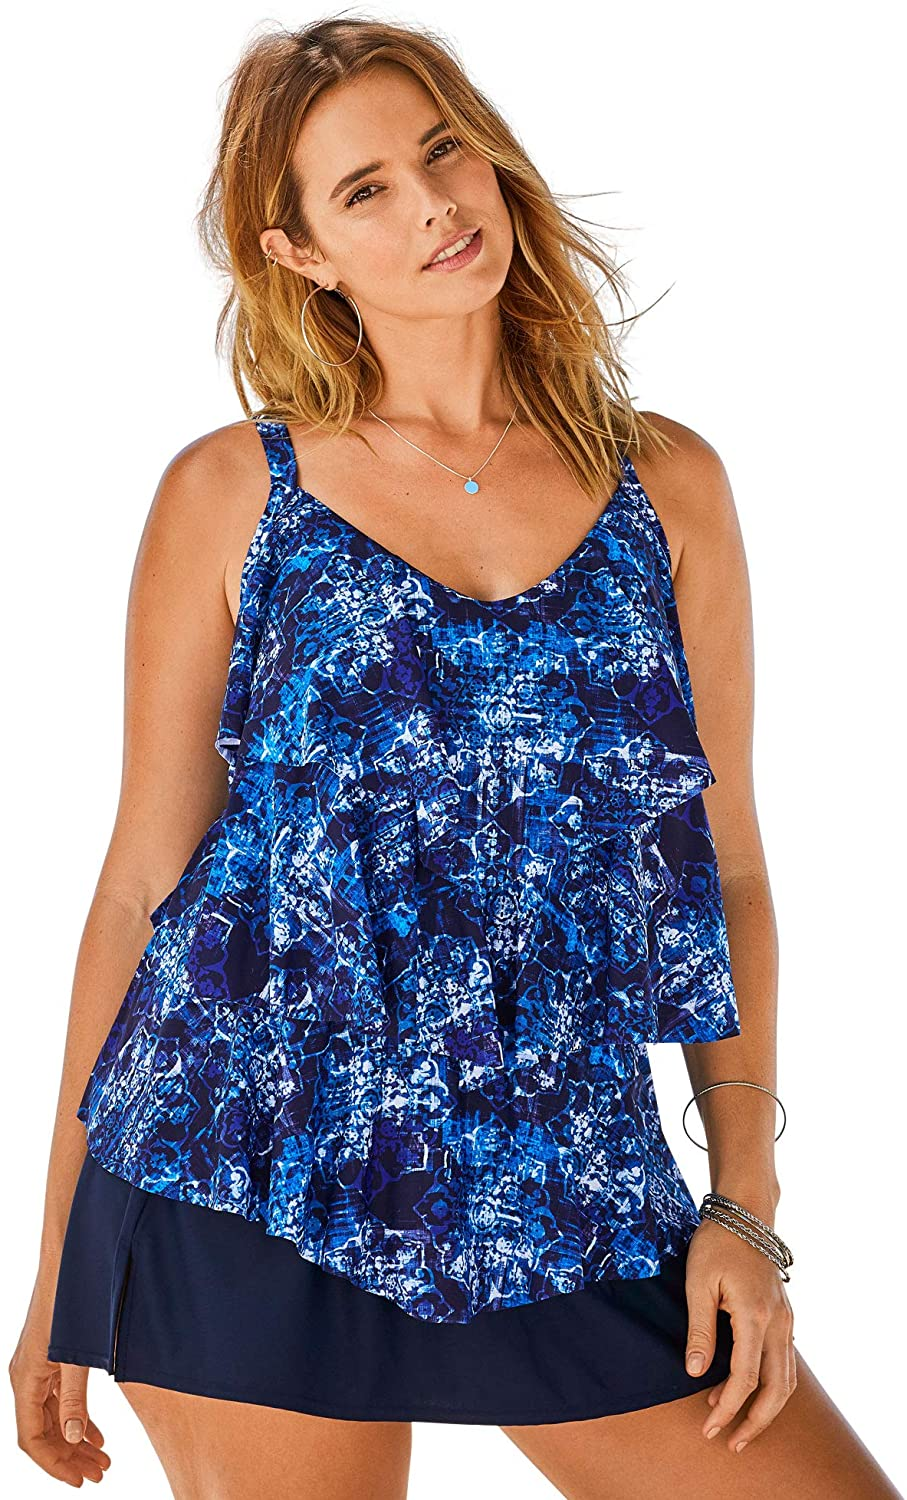 Swimsuits Store For All Women's Ranking TOP12 Plus Tankini Size Tiered-Ruffle Top